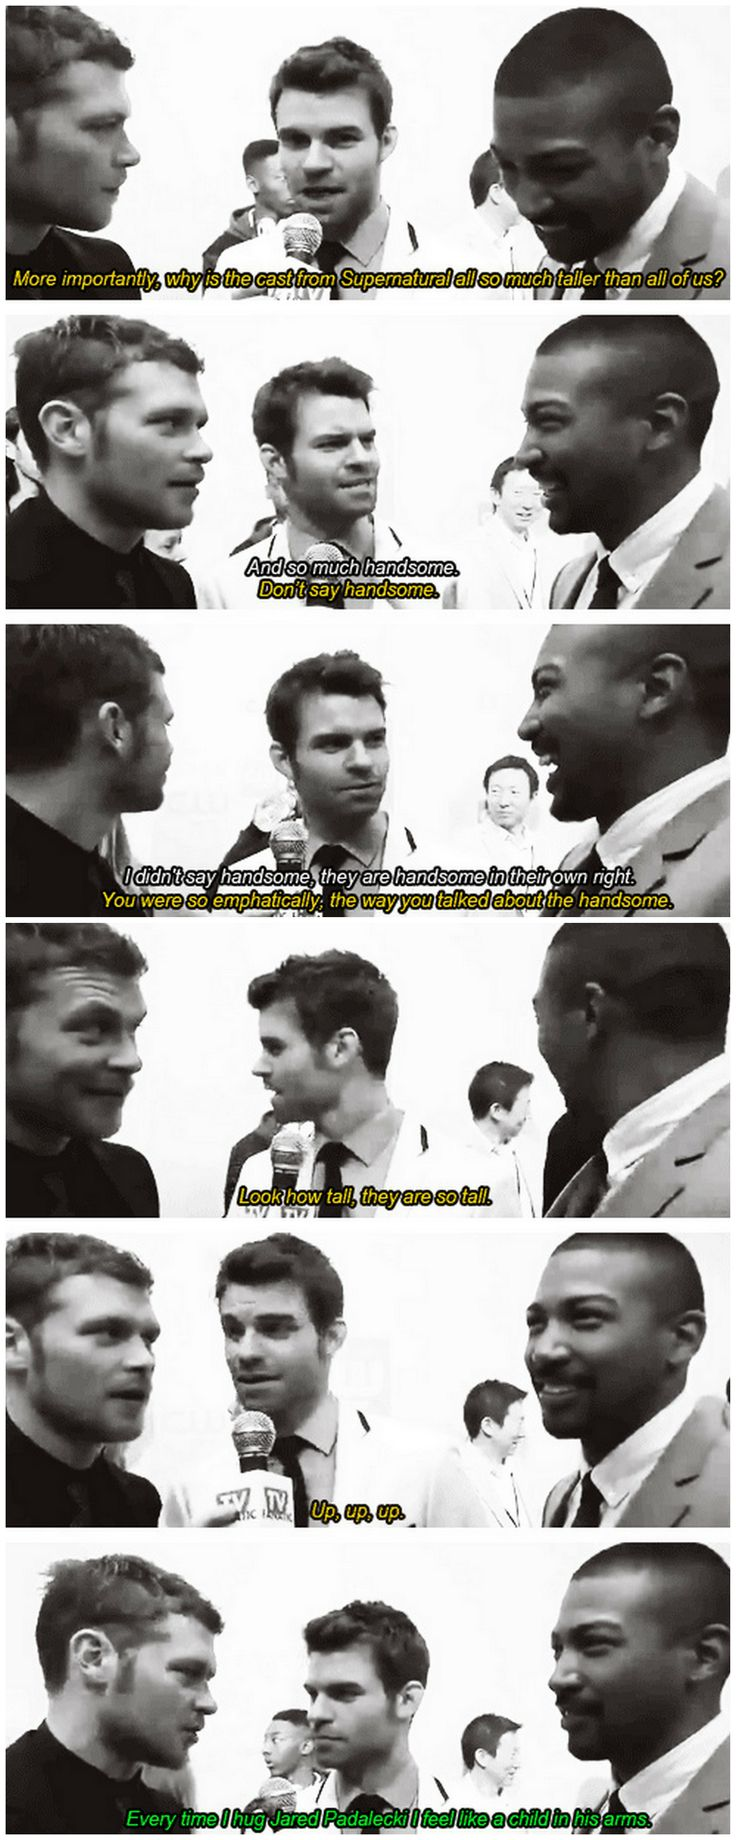 [gifset] Okay so this isn't SPN cast, but it's just perfection <3  The Origanals cast #JosephMorgan #DanielGillies #CharlesMichaelDavis at the #CWUpfronts14